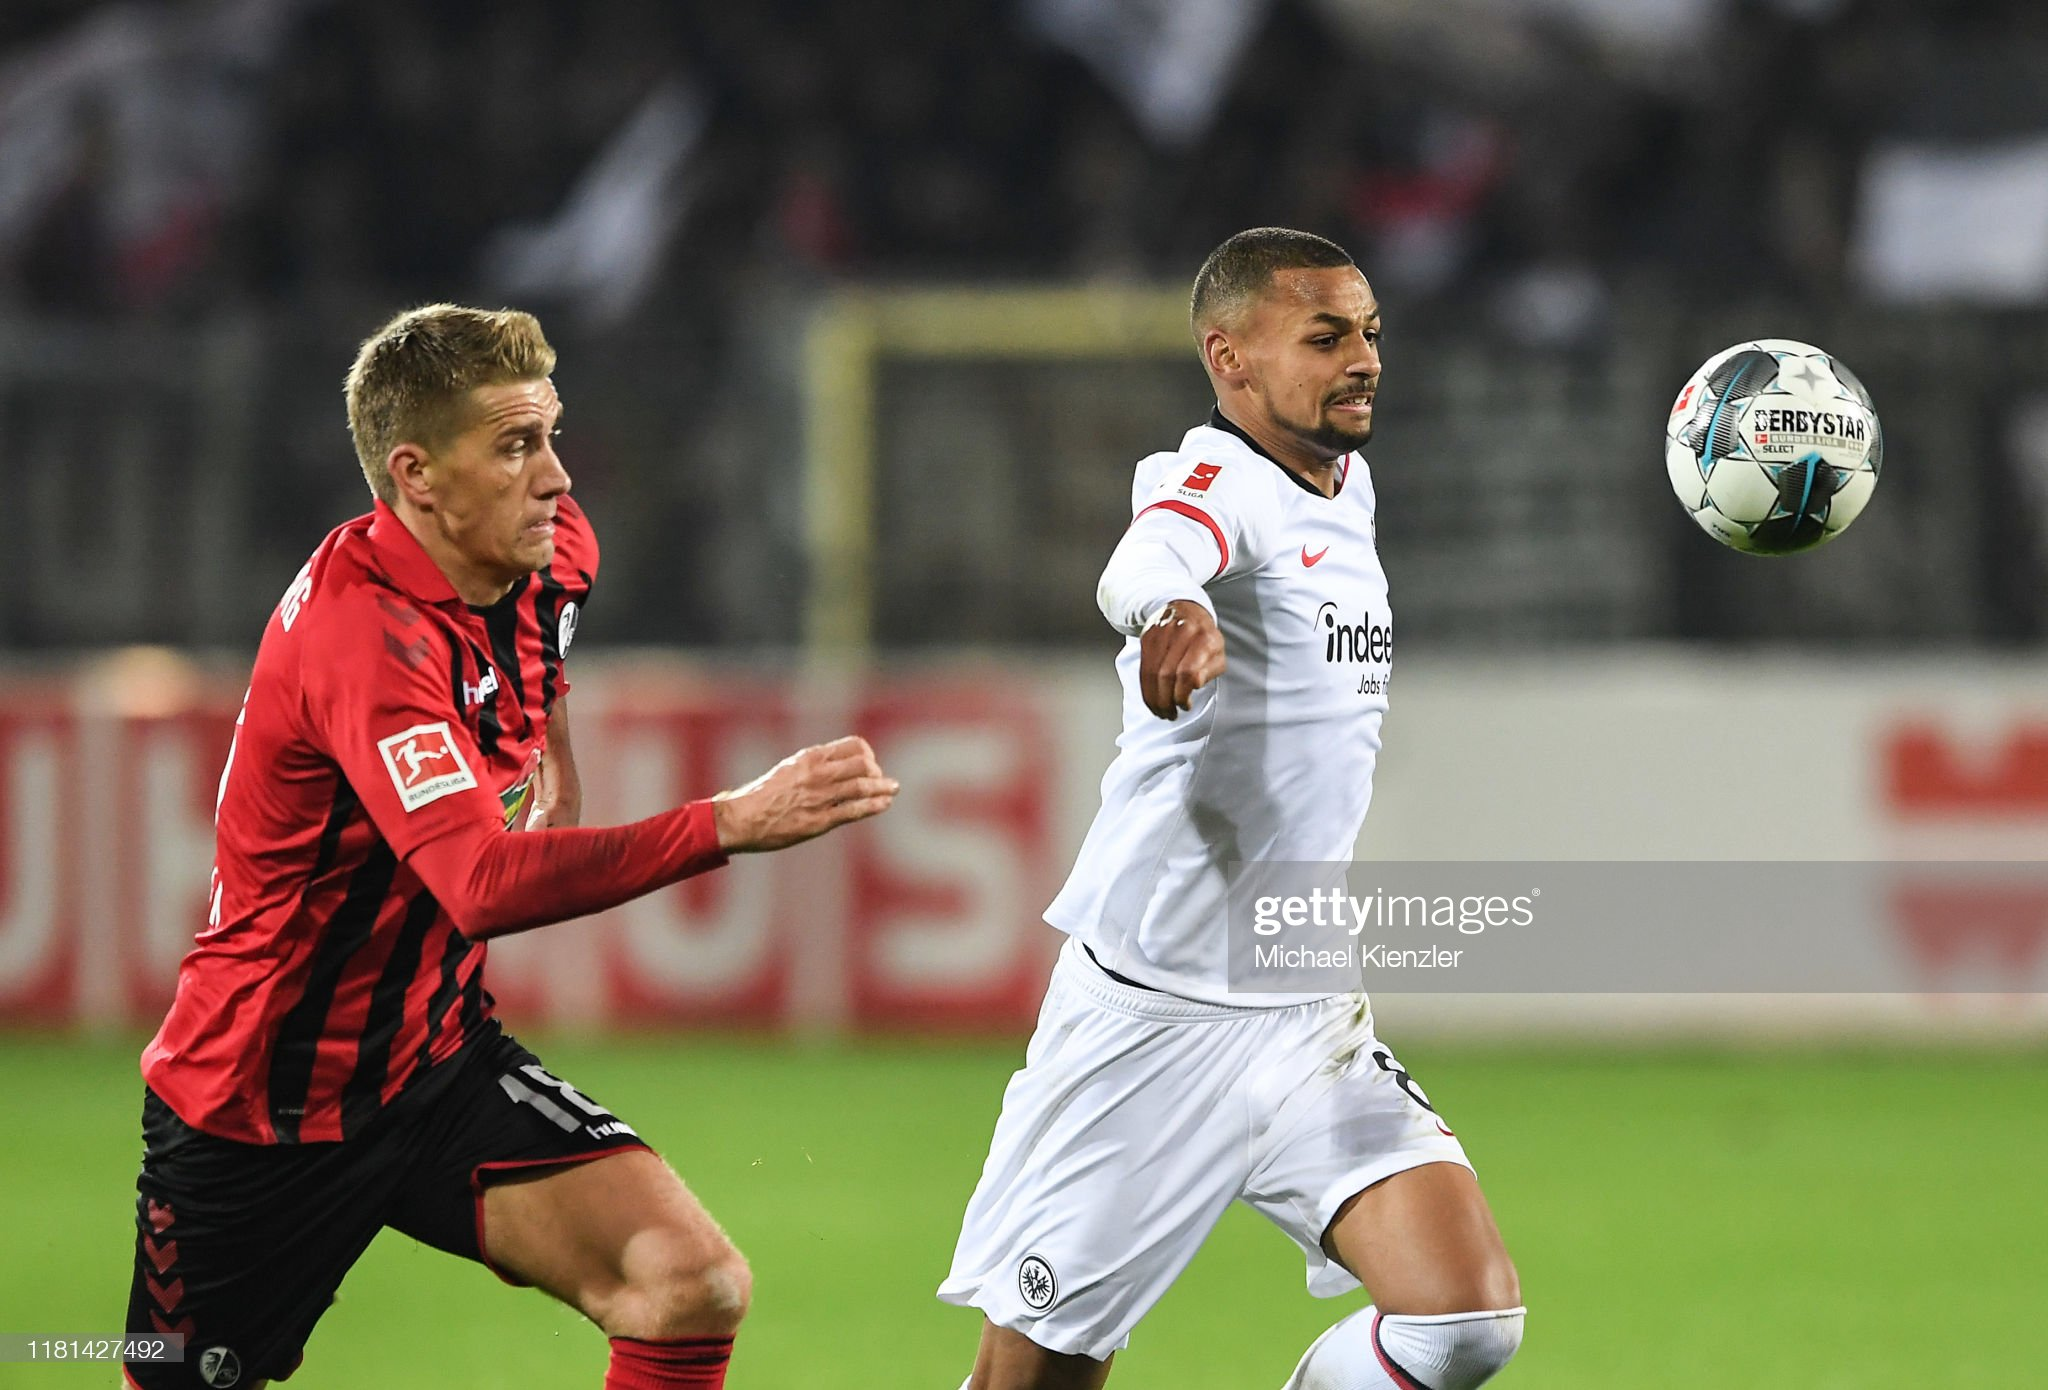 Eintracht Frankfurt vs Freiburg Preview, prediction and odds